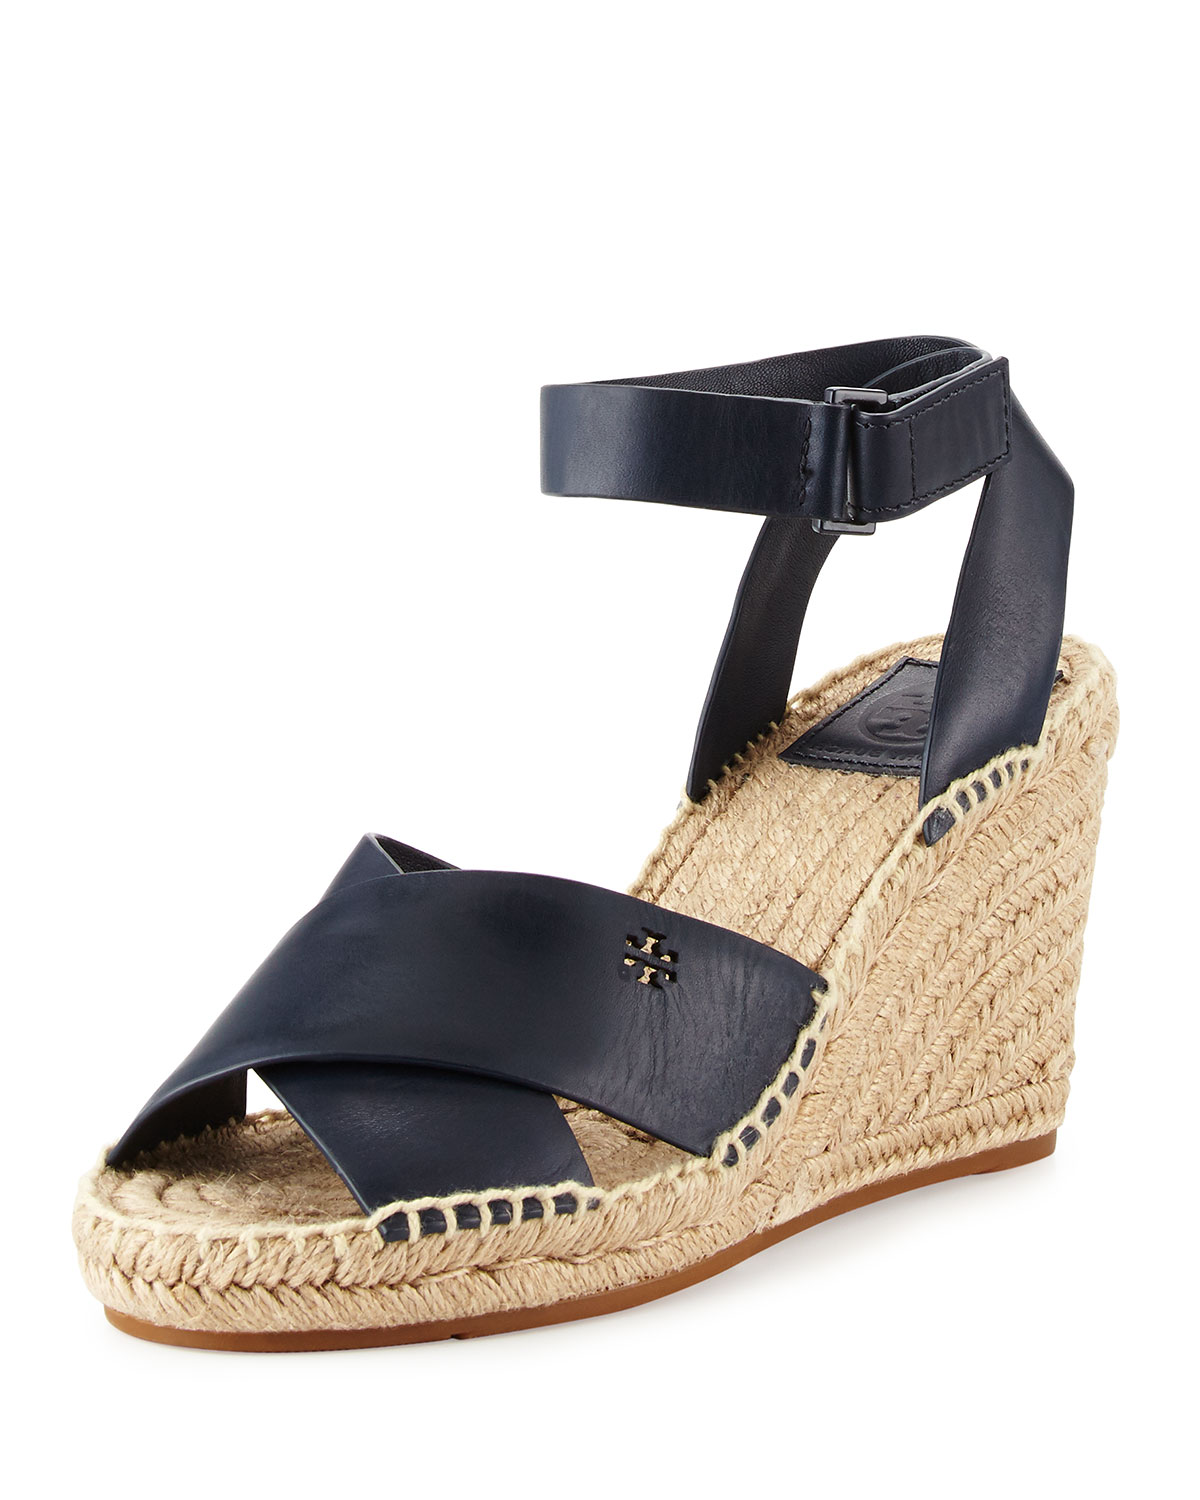 a89ce628990f Tory Burch Bima Leather Wedge Espadrille Sandal